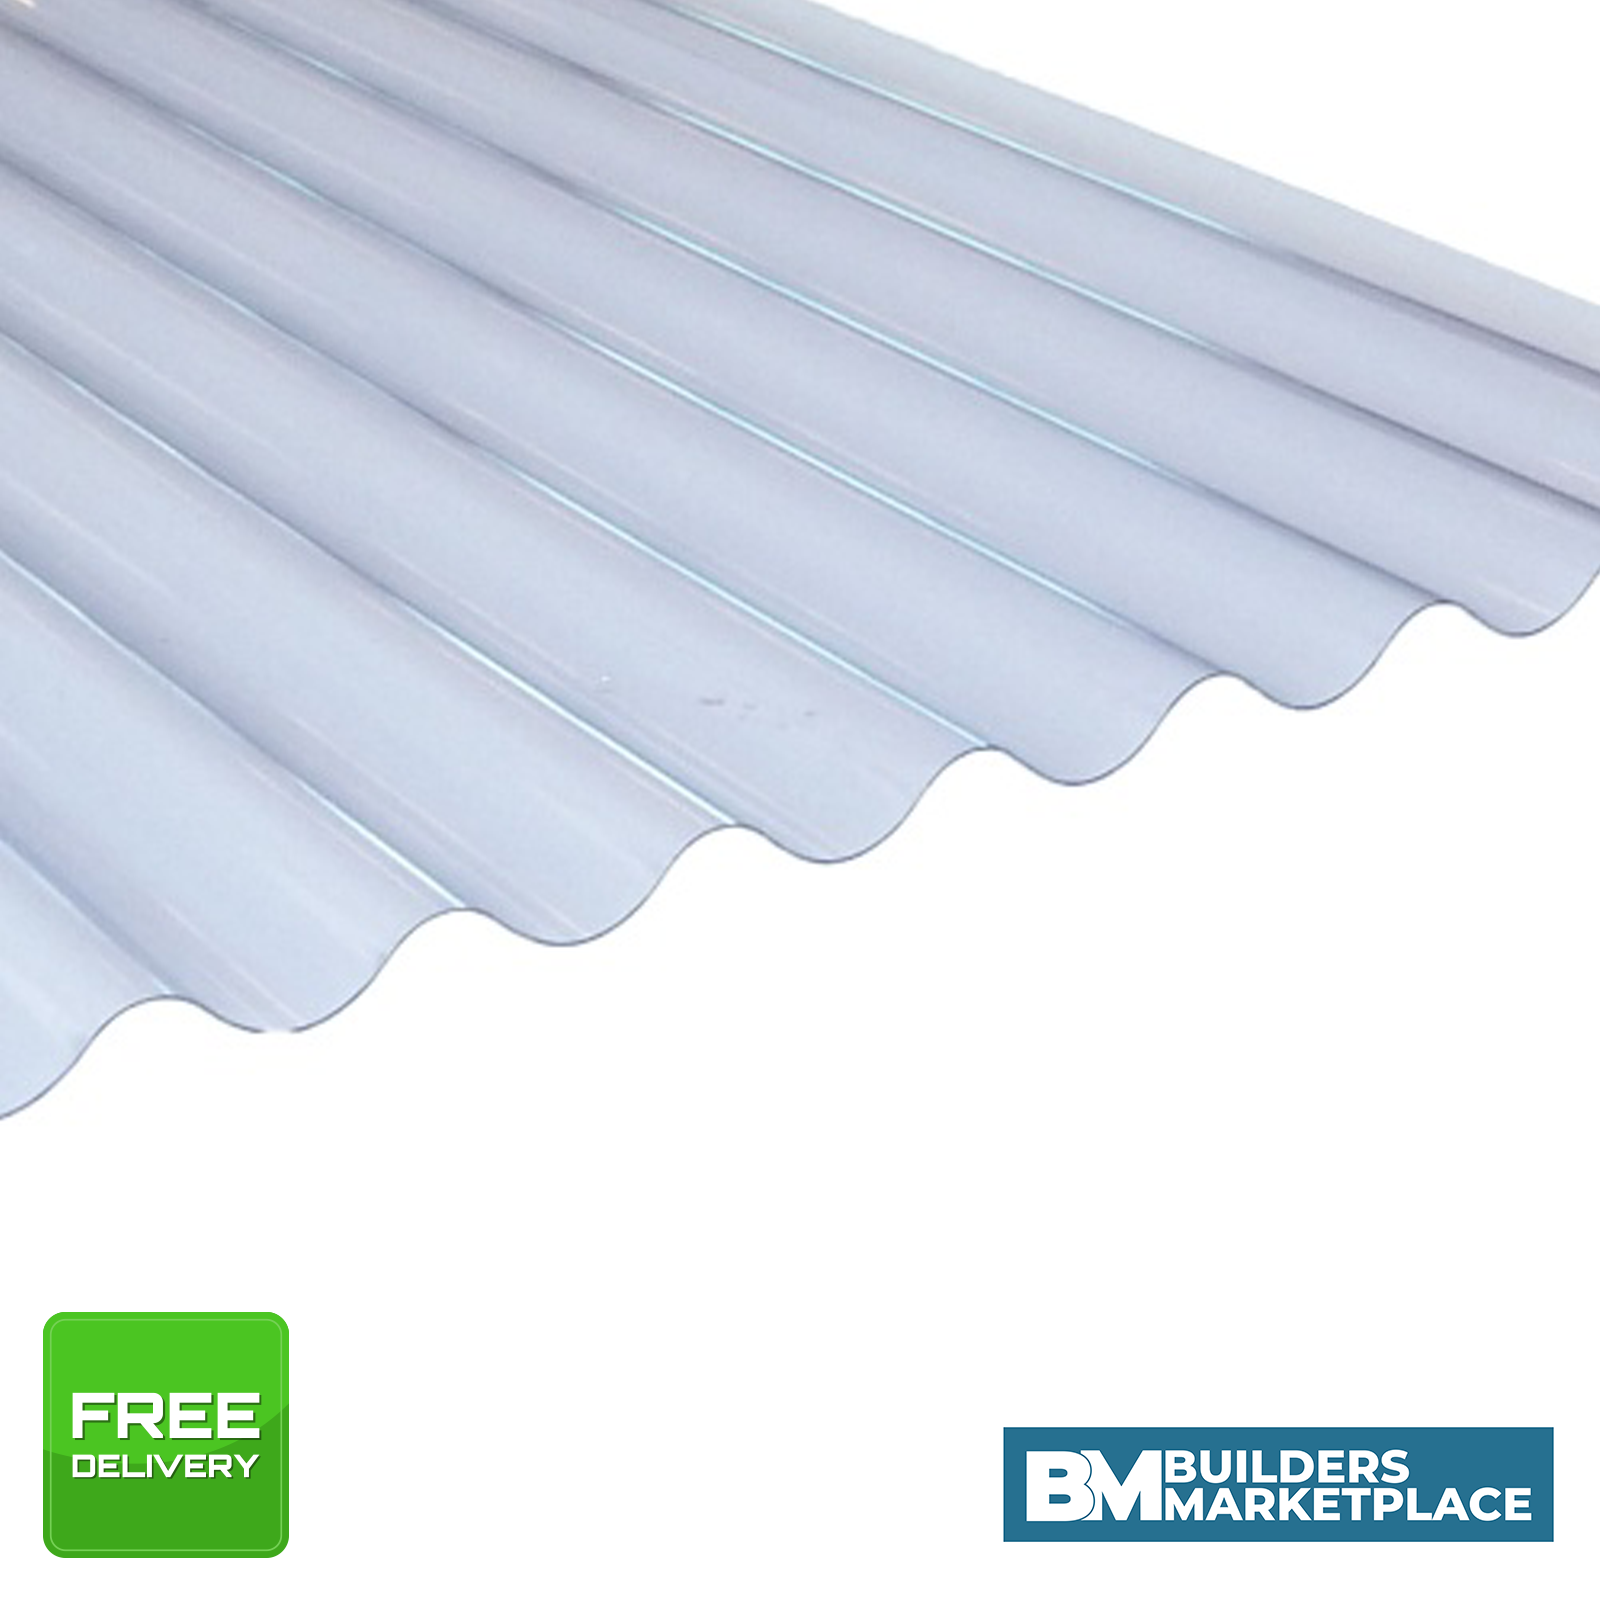 Plastic Roofing Sheets Clear Corrugated Plastic Roofing